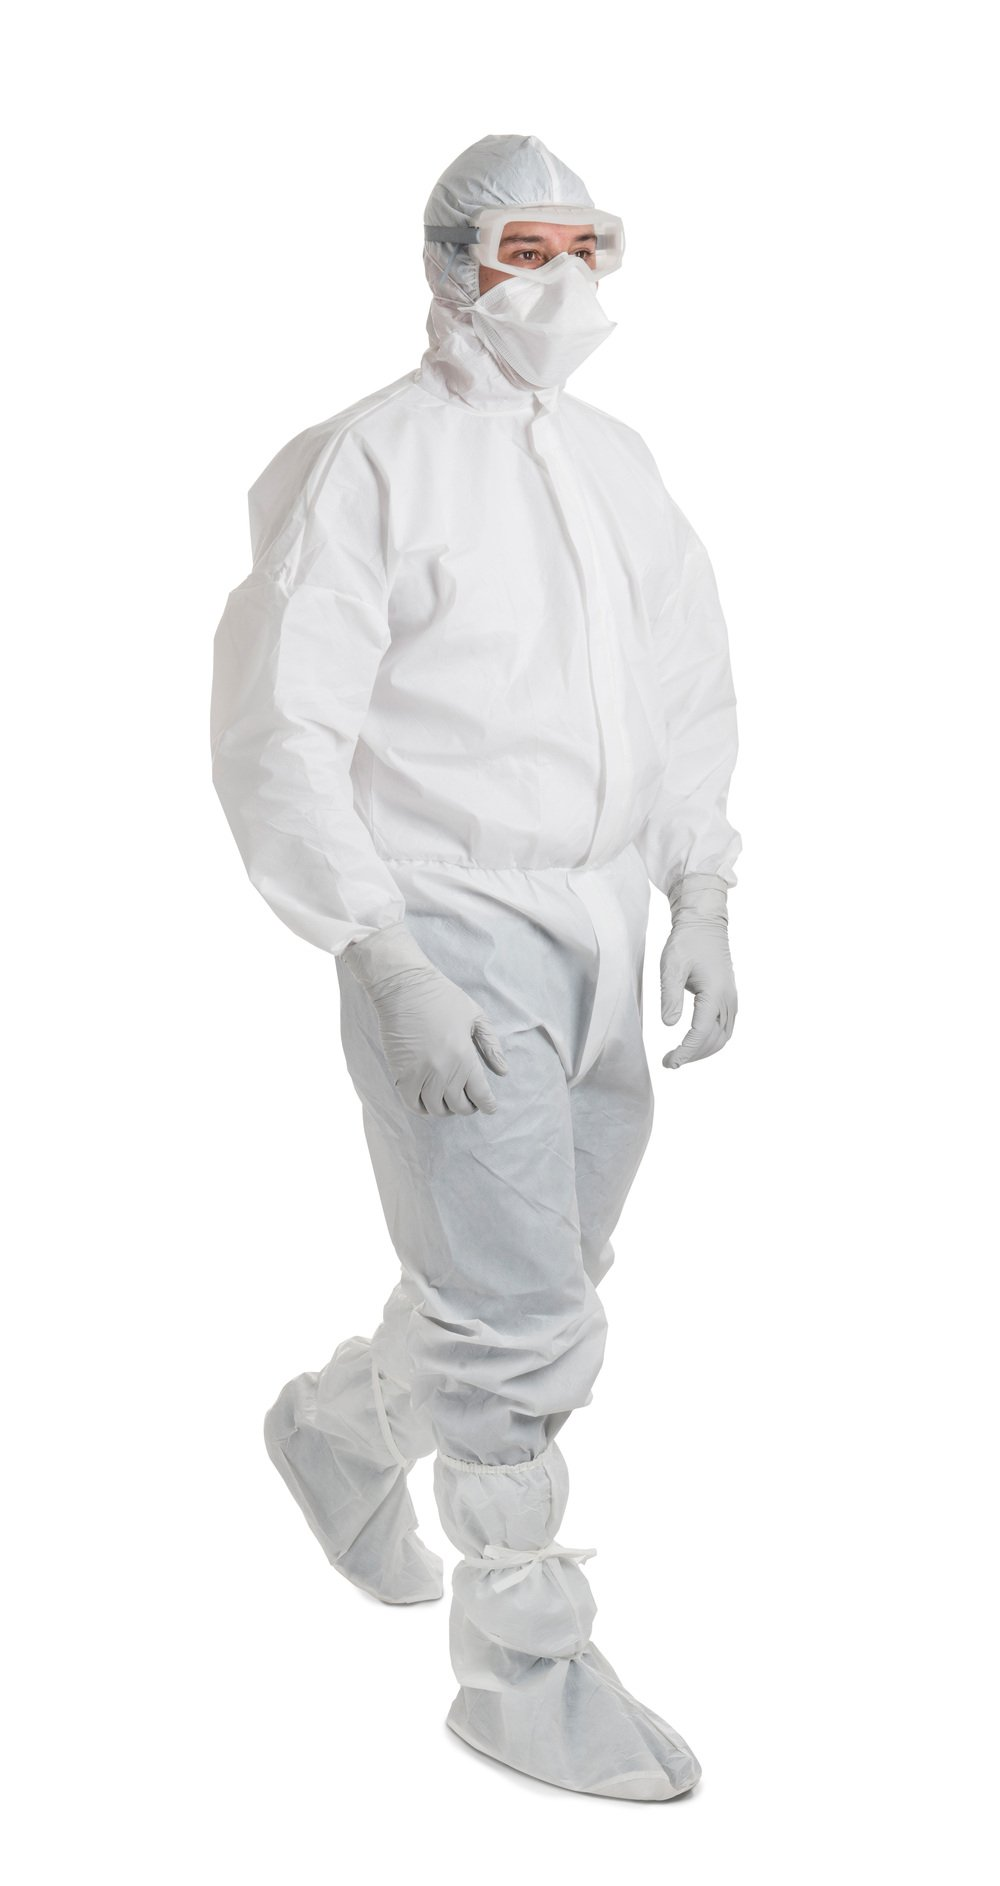 Kimtech™ A6 Breathable Liquid Protection Coveralls (47681), Covered Zipper, Elastic Cuffs, Thumb Loops, Hood, White, Small, 25 / Case - 47681